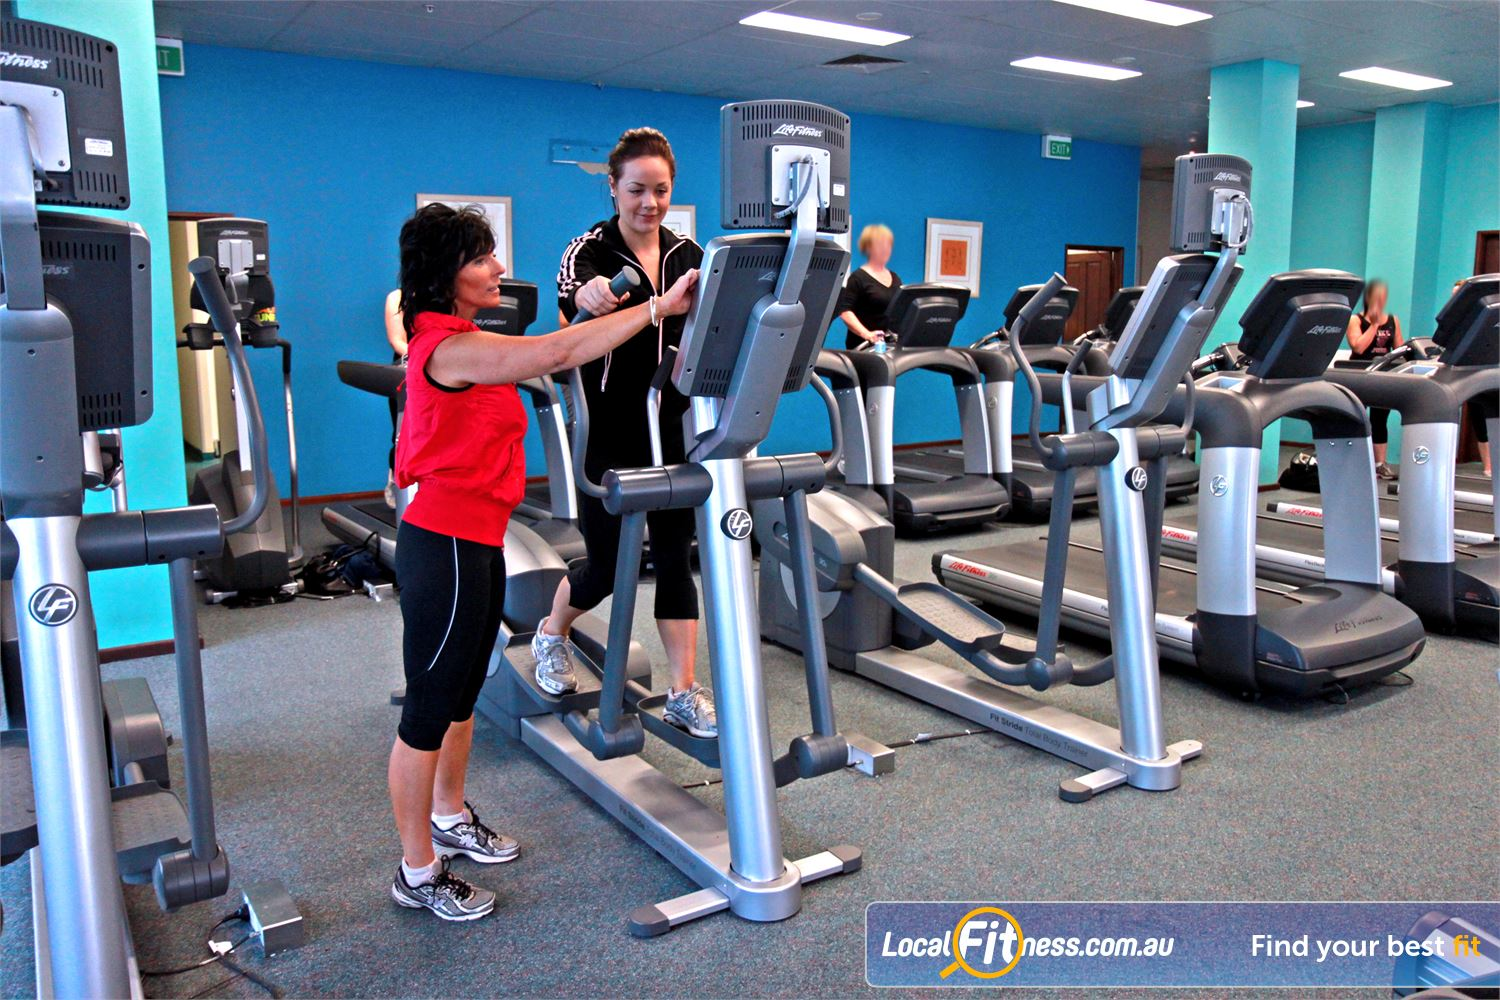 Fernwood Fitness Gungahlin Fernwood Gungahlin gym instructors can help you with cardio and weight management.